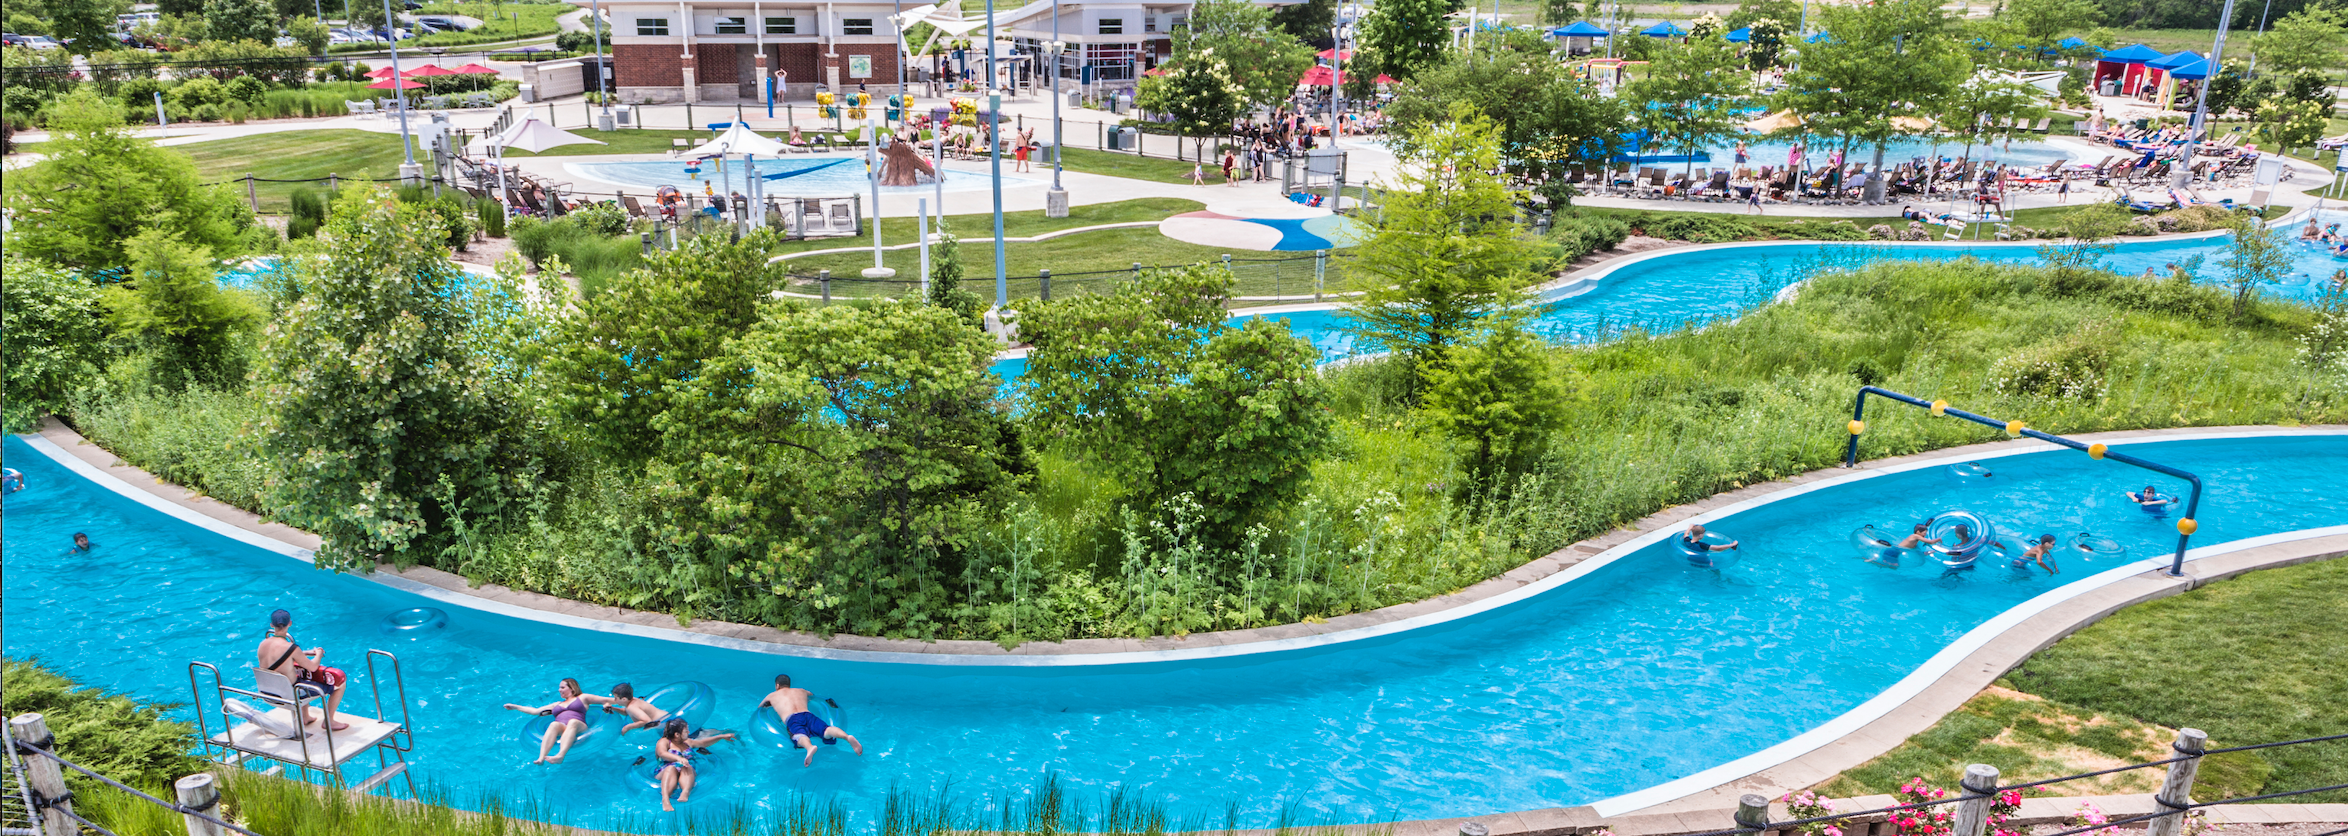 Lazy River at The Waterpark